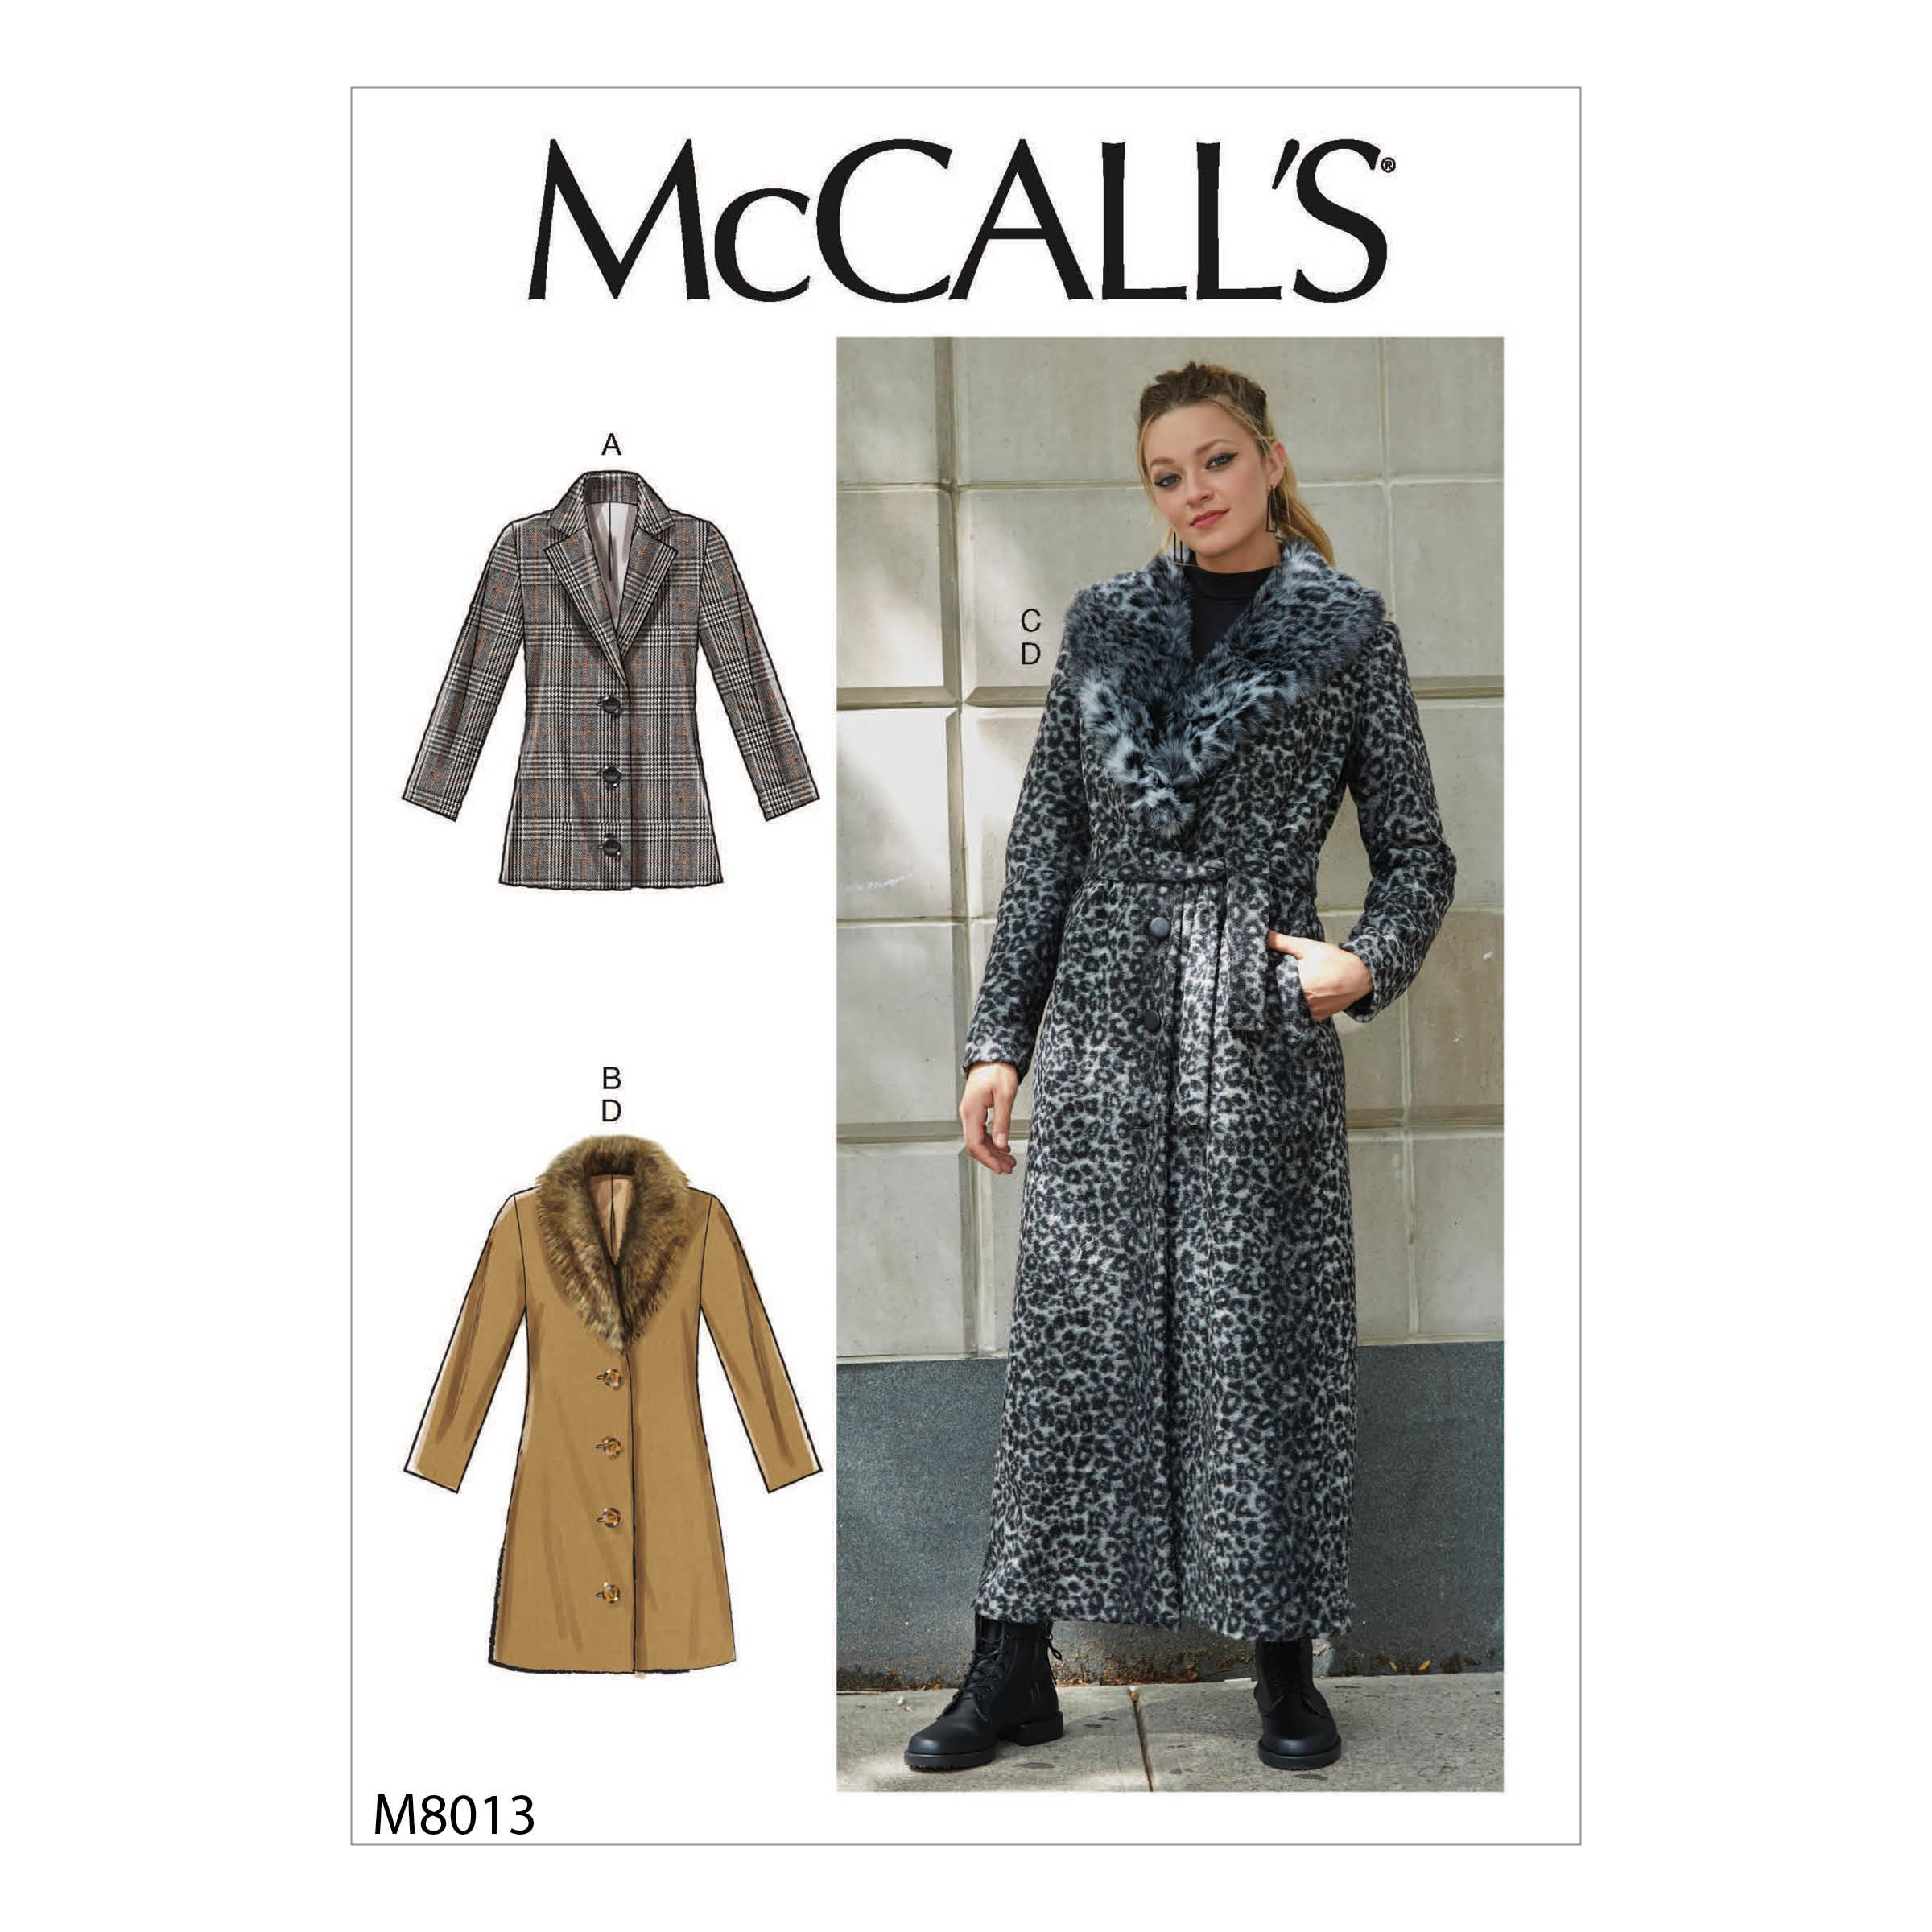 McCalls M8013 Misses Coats, Capes & Ponchos, Misses Jackets & Vests